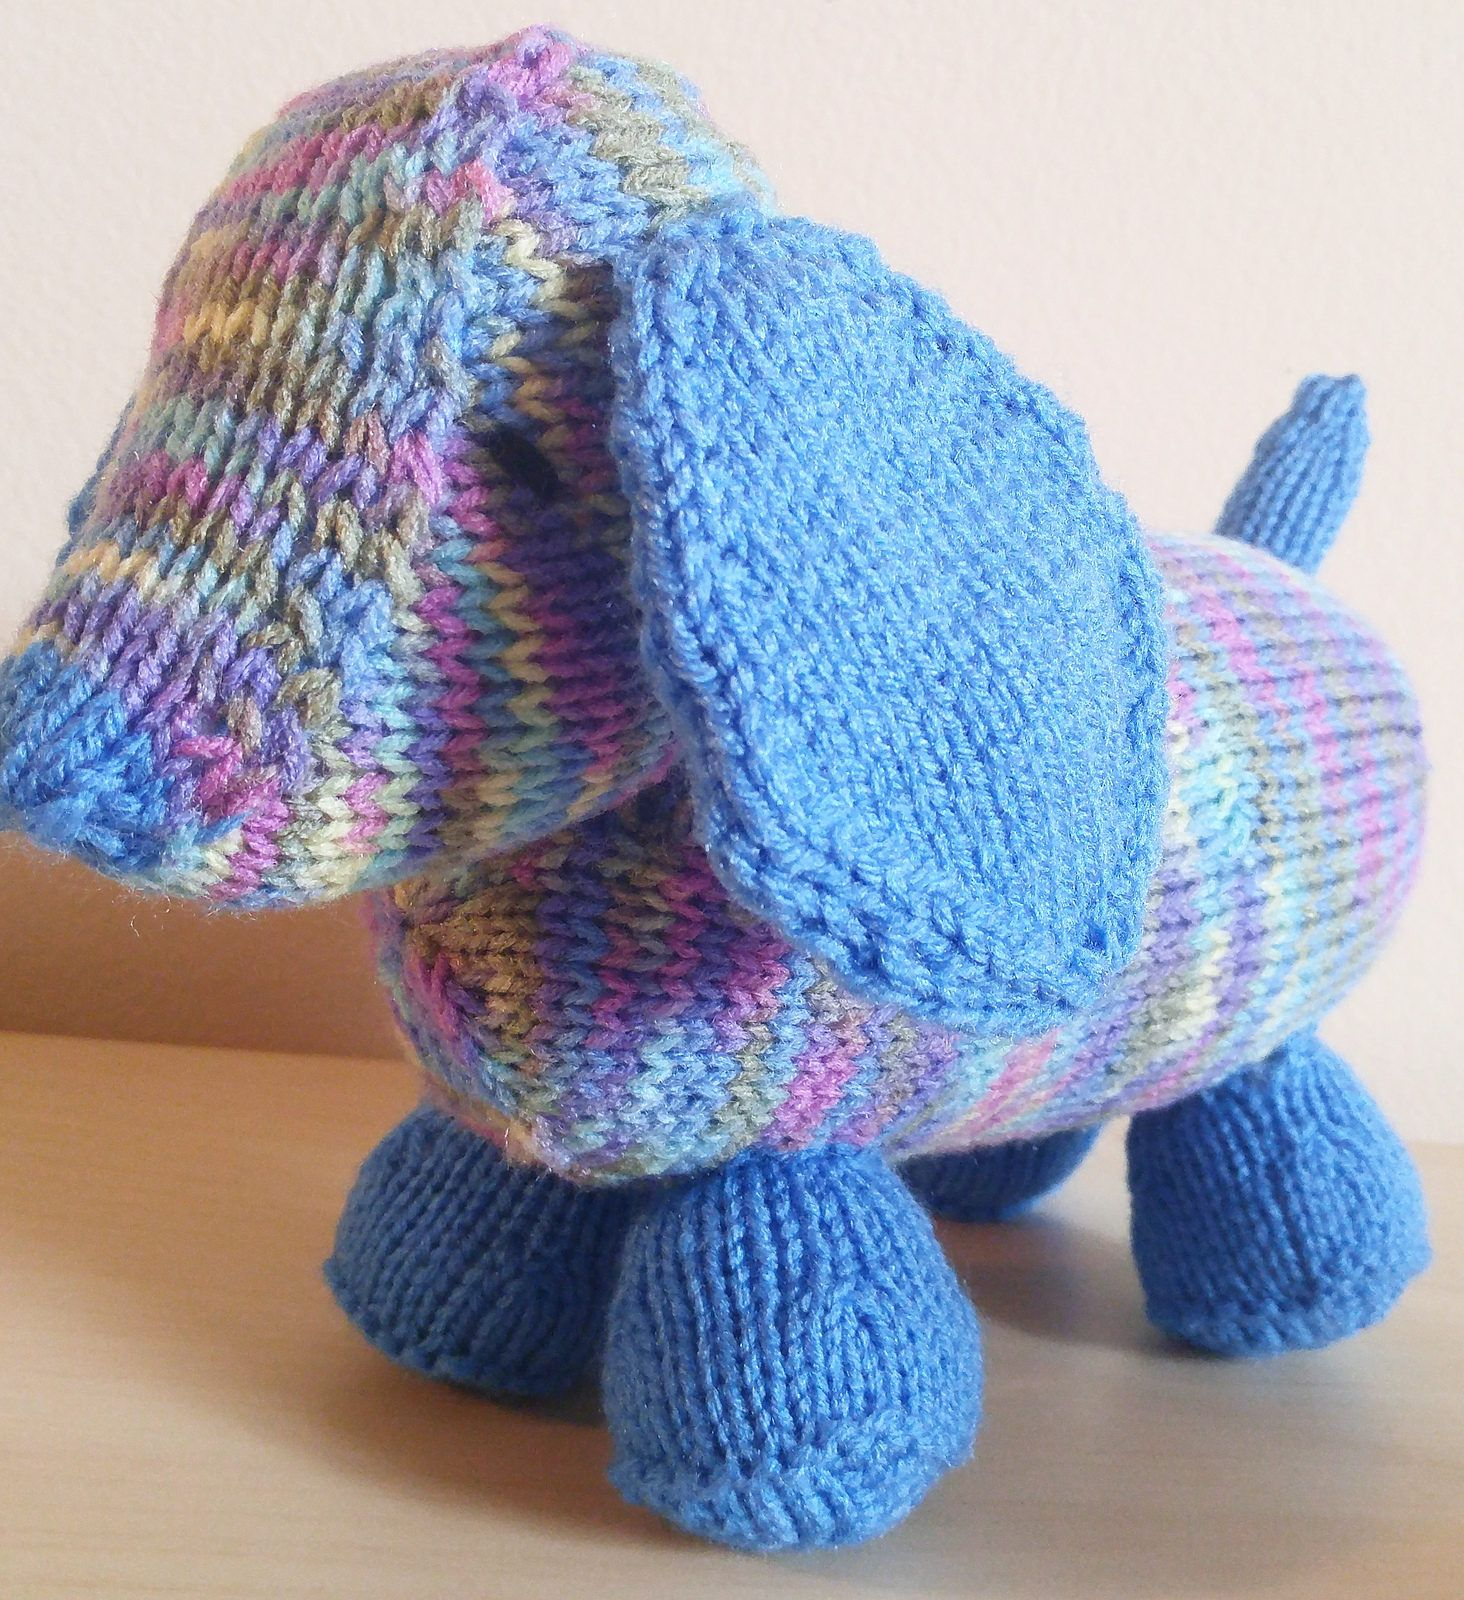 Free knitting pattern for luis the long puppy toy dog designed free knitting pattern for luis the long puppy toy dog designed by rebecca borkowski is bankloansurffo Gallery